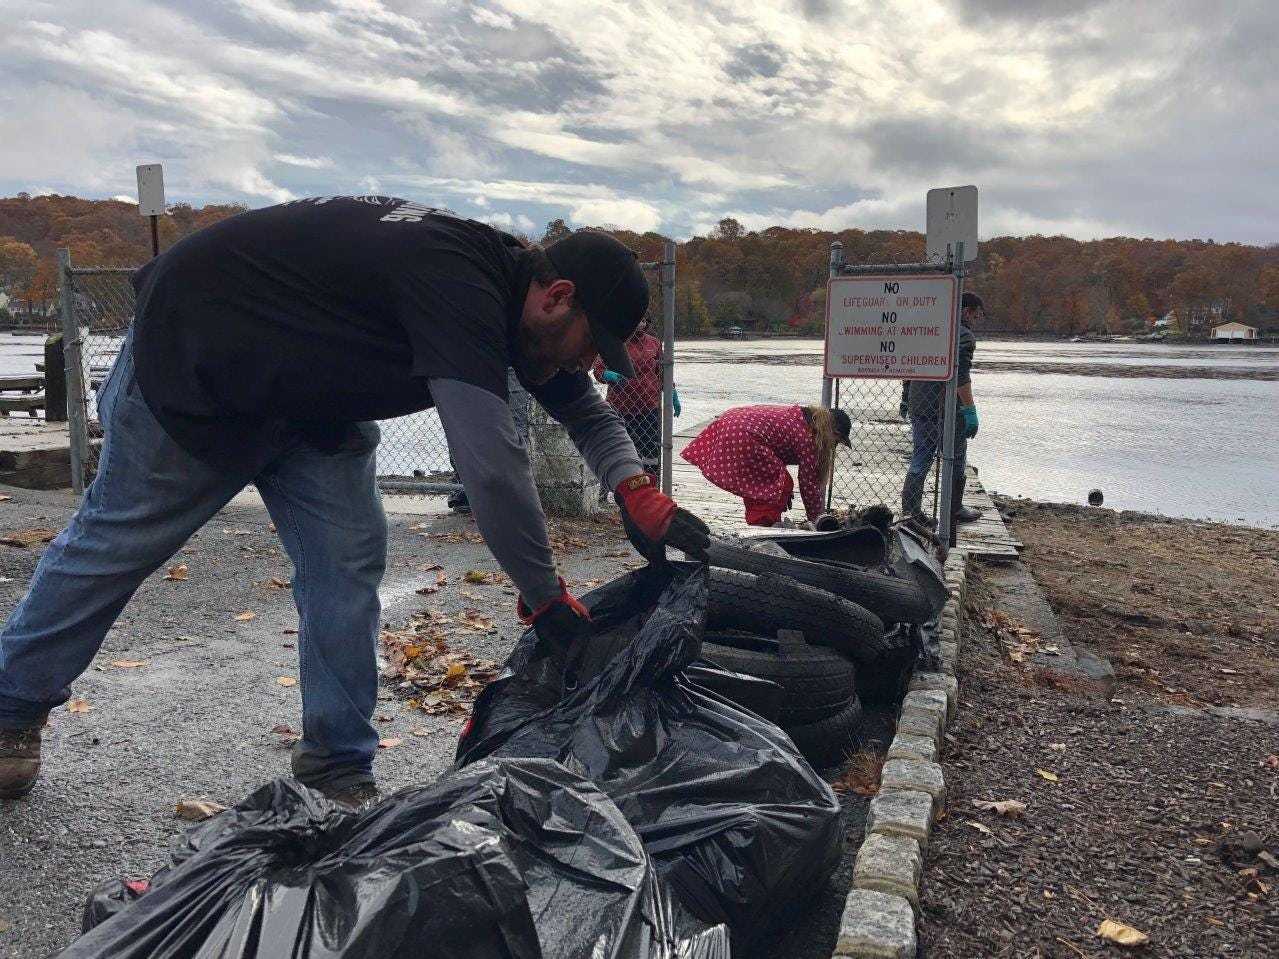 Bags and debris pile up during the Lake Hopatcong cleanup on Nov. 3, 2018.